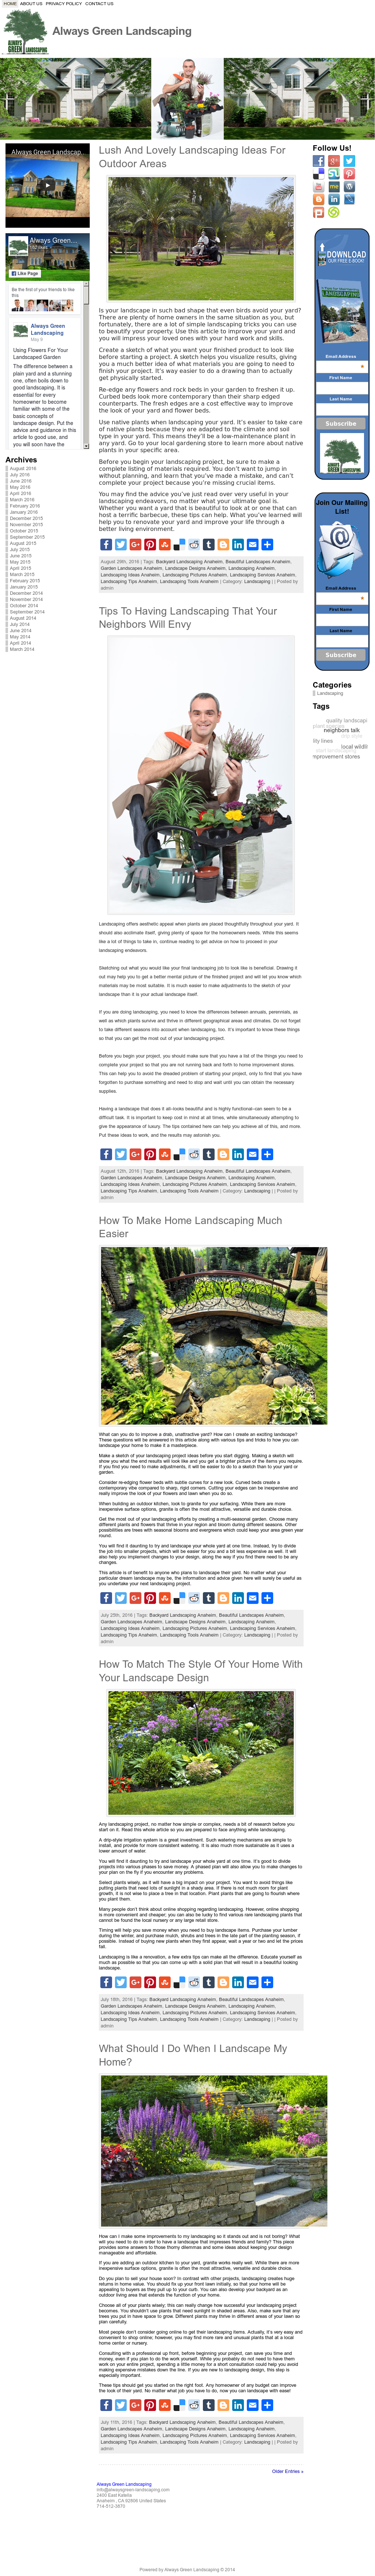 Always Green Landscaping S Competitors Revenue Number Of Employees Funding Acquisitions News Owler Company Profile